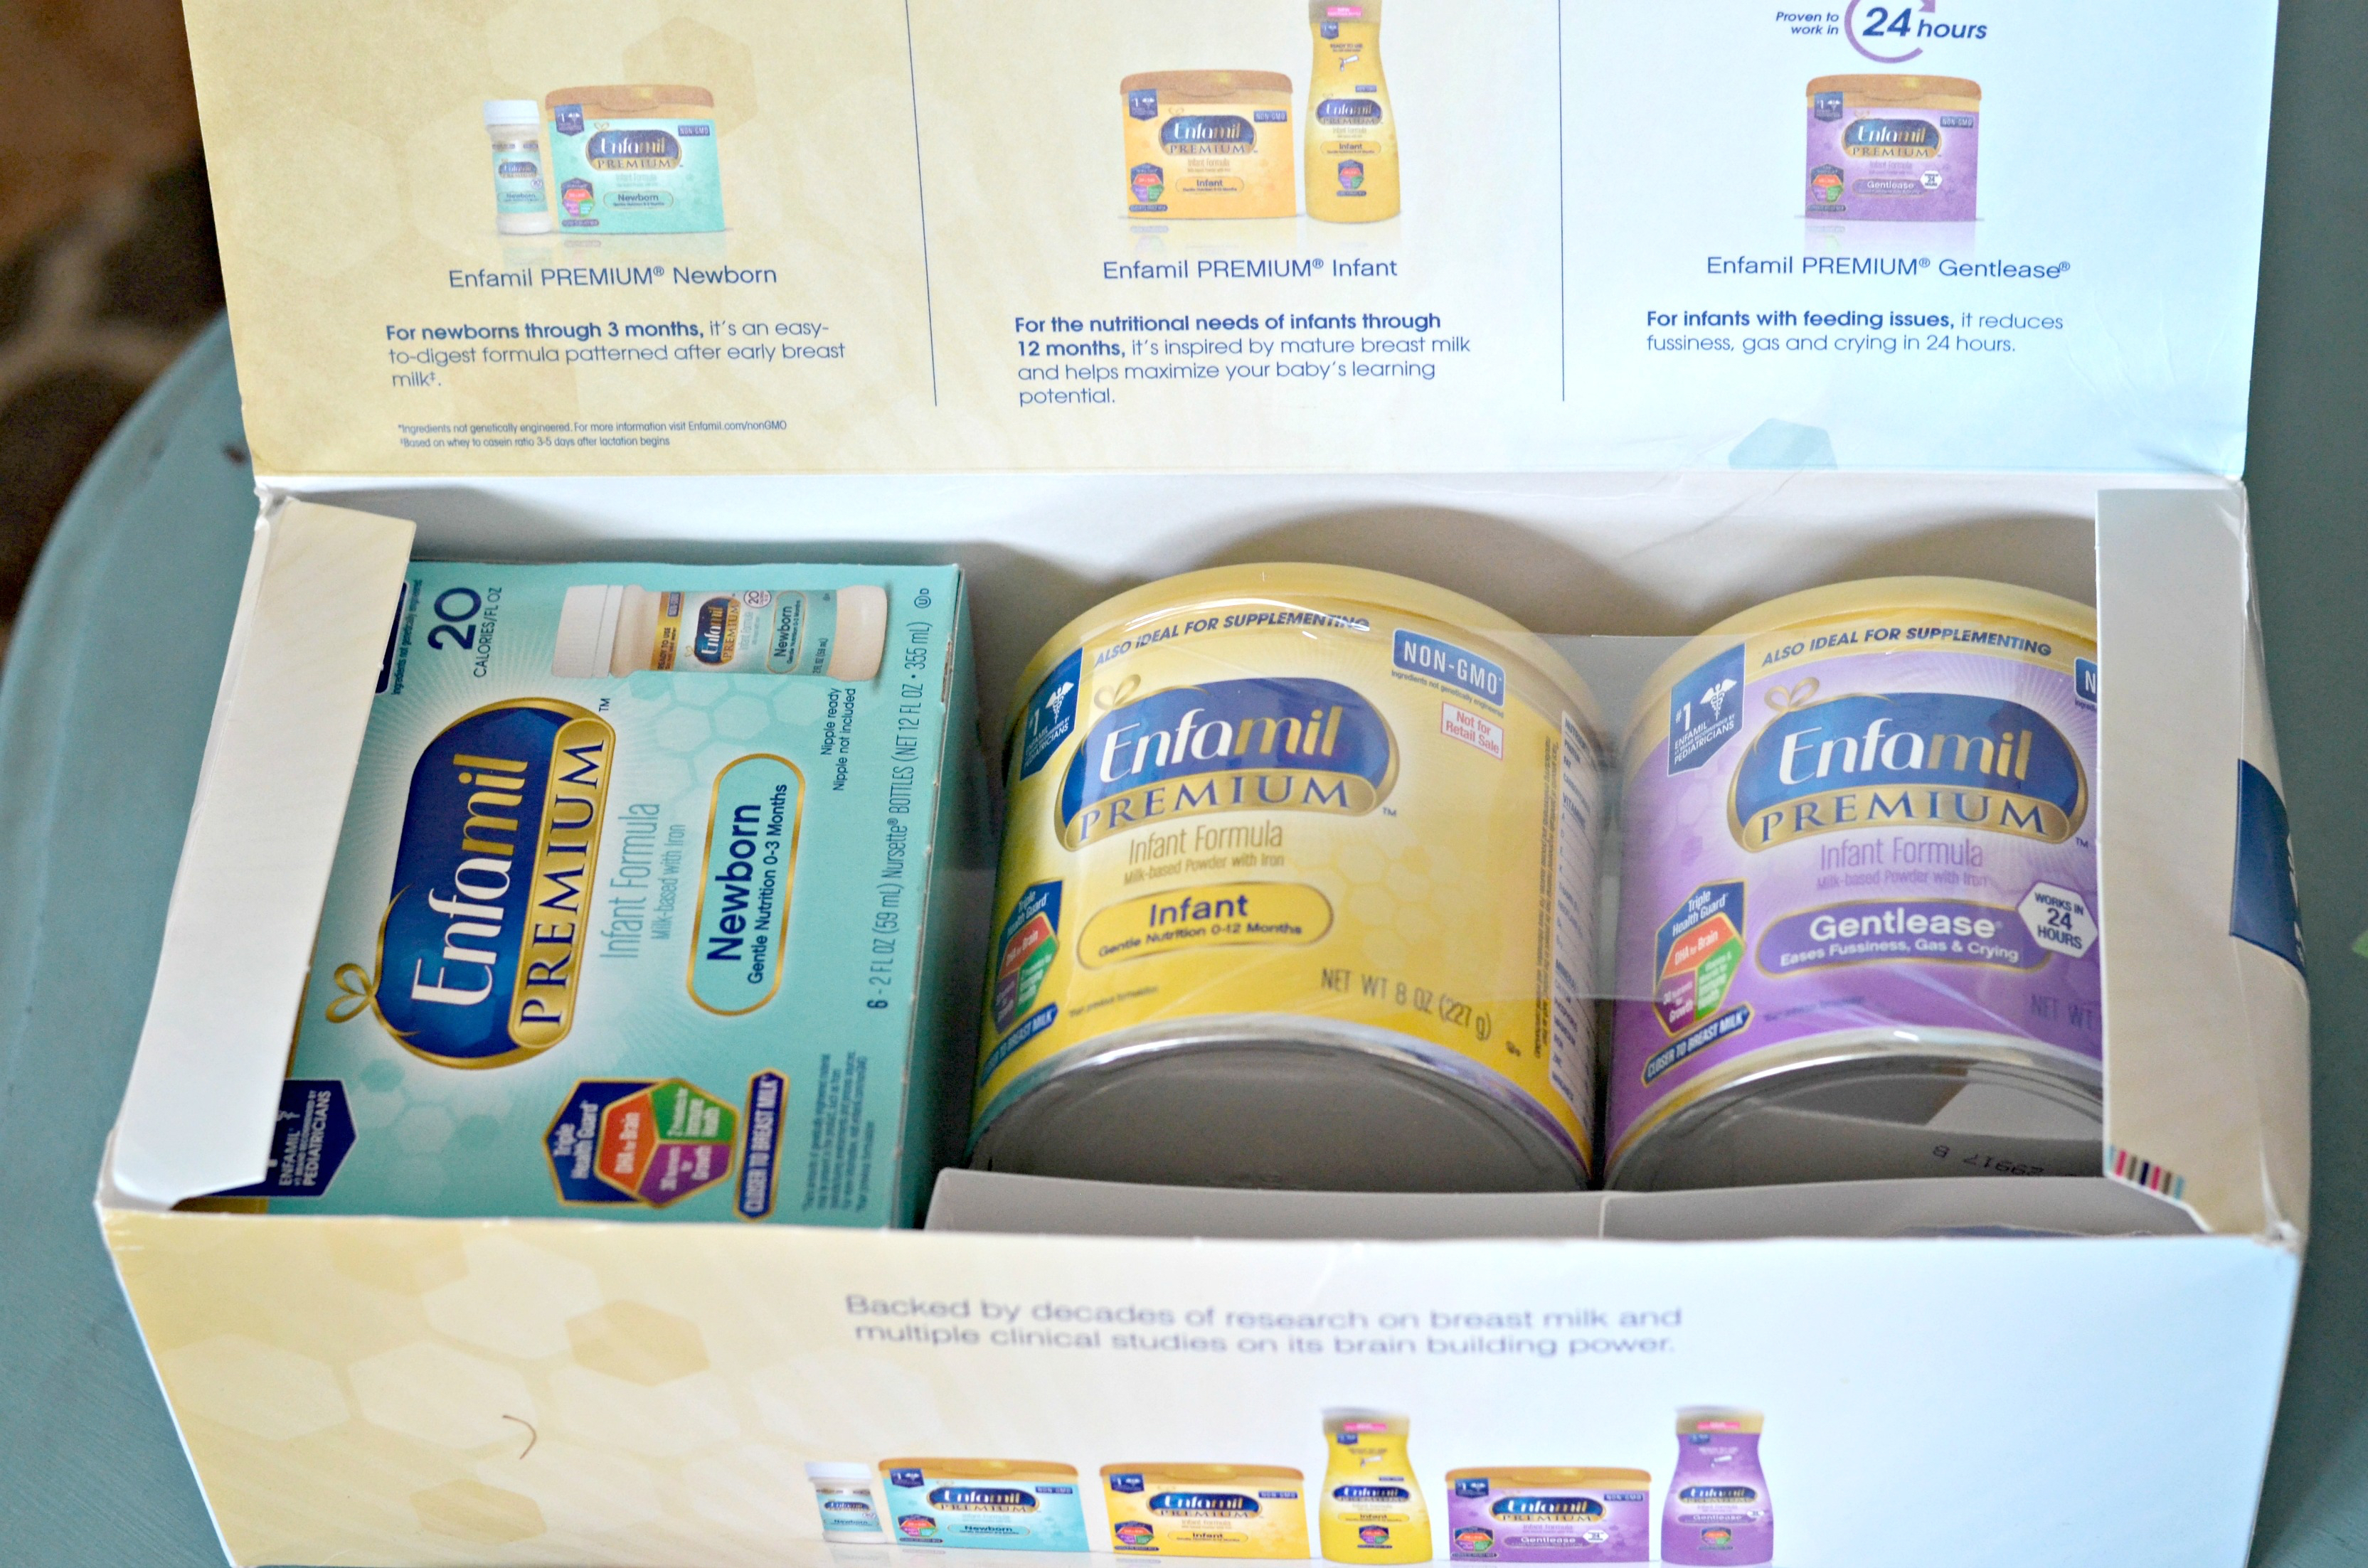 get free enfamil gifts like these Enfamil samples